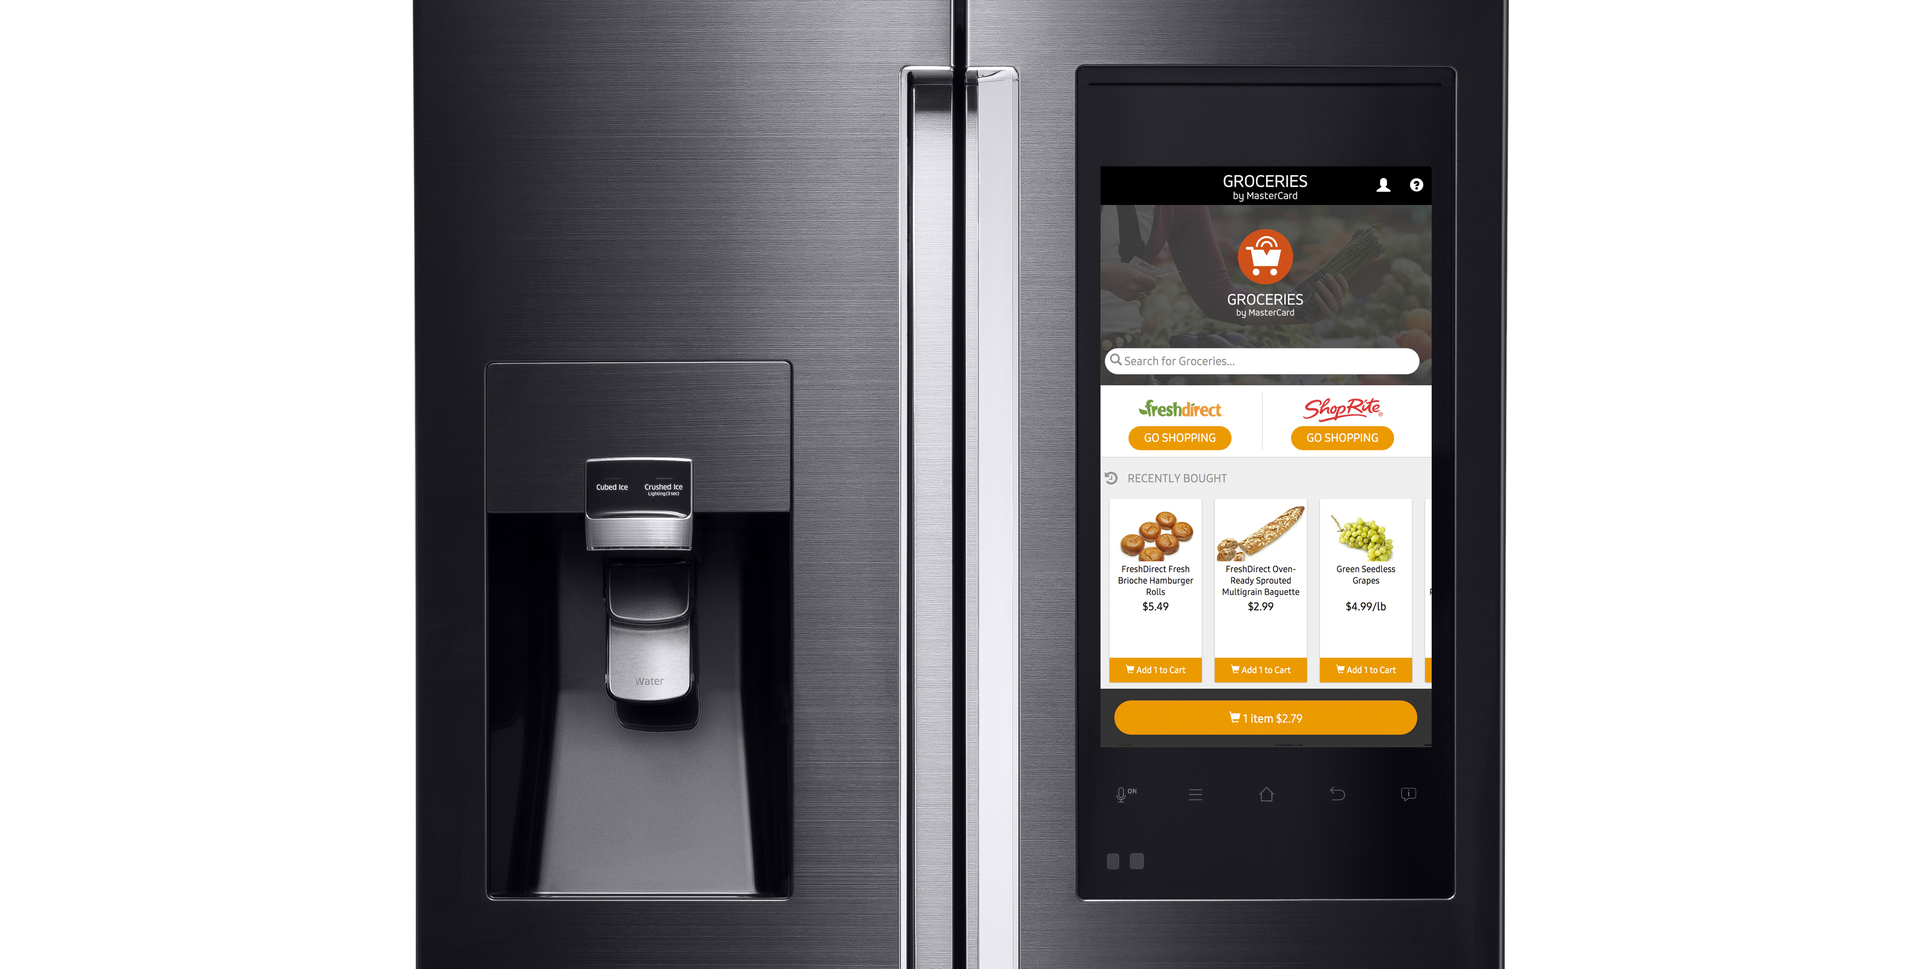 Smart Kühlschrank Mastercard Samsung Make Everyday Shopping Easier In Tomorrow S